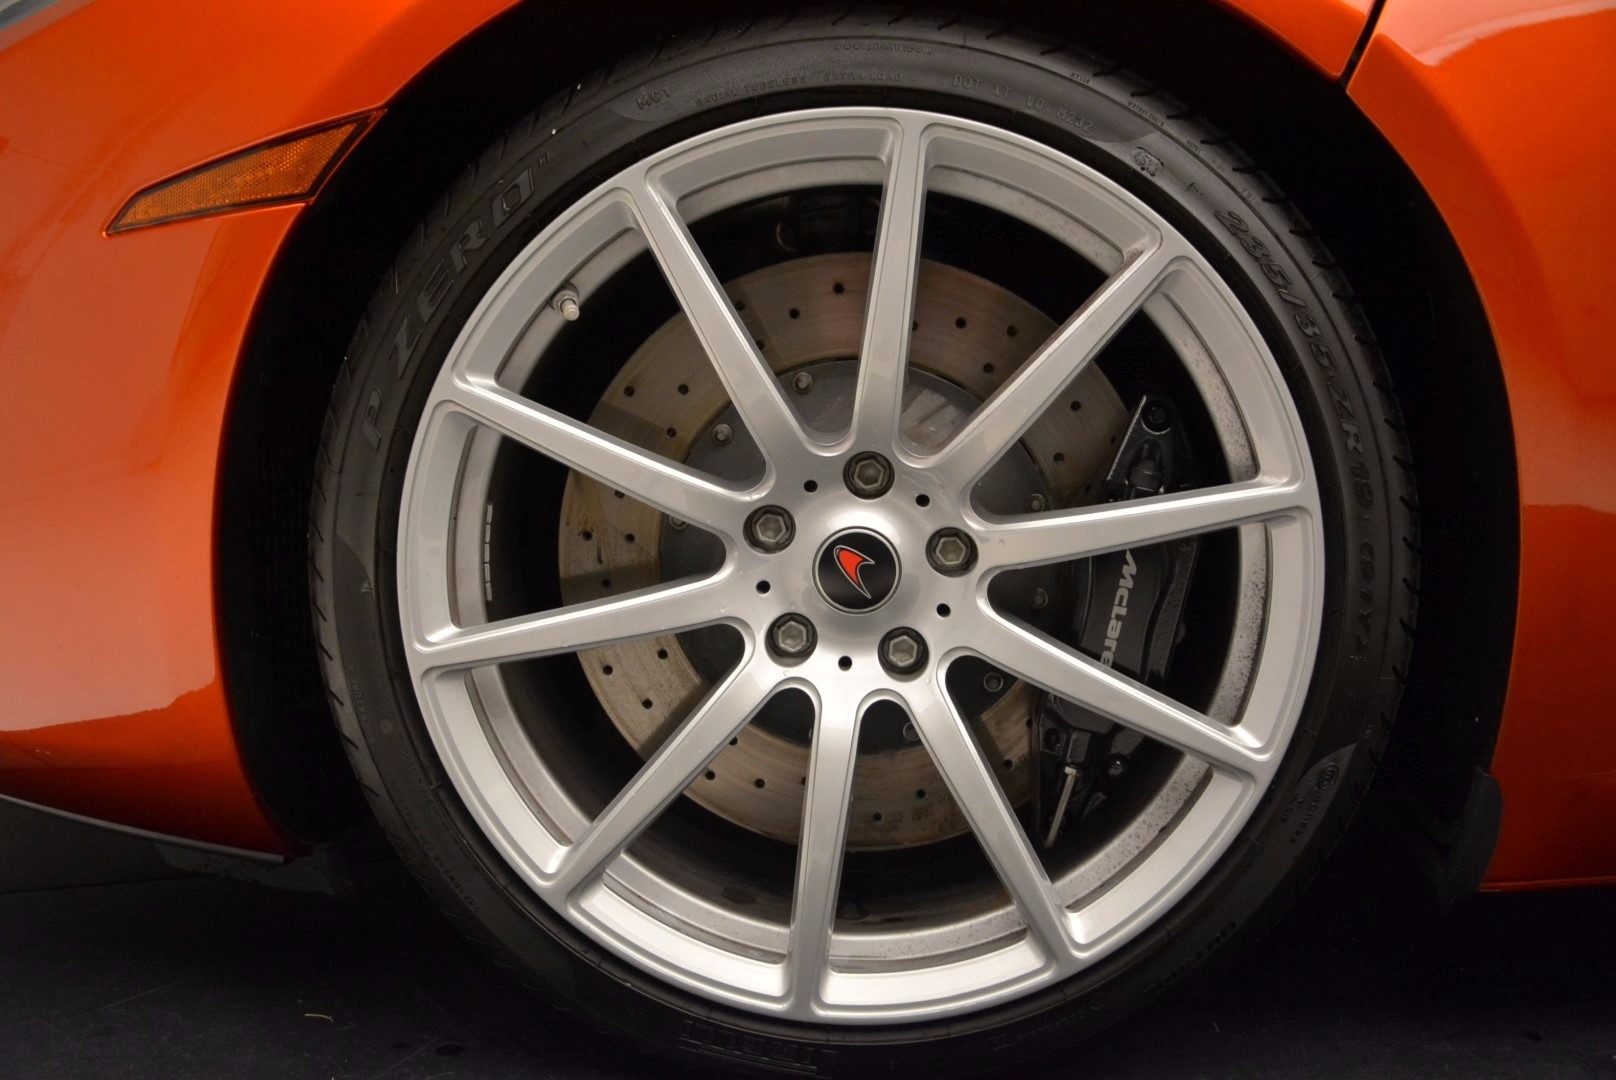 Used 2012 McLaren MP4-12C  For Sale In Greenwich, CT. Alfa Romeo of Greenwich, 3094 1035_p15